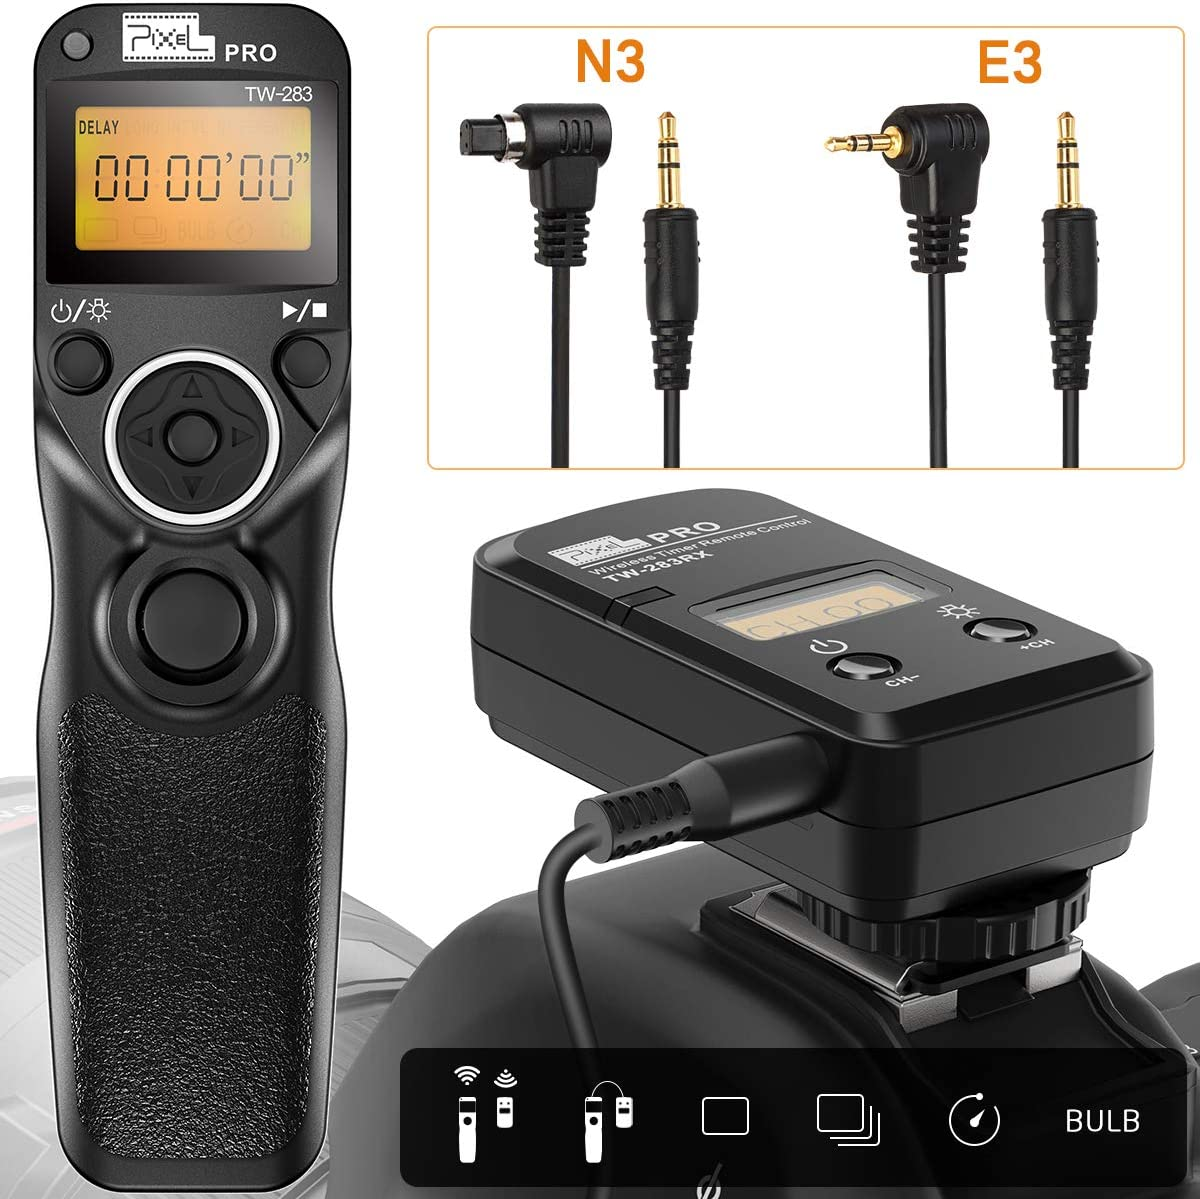 Wireless Shutter Release for Canon, Pixel TW283-N3/E3 Camera Remote Control for Canon EOS R, 5D seires 5D Mark 750D 1300D 7D Series 40D 30D 5D 70D 80D 60D, for Pentax K5 K20D